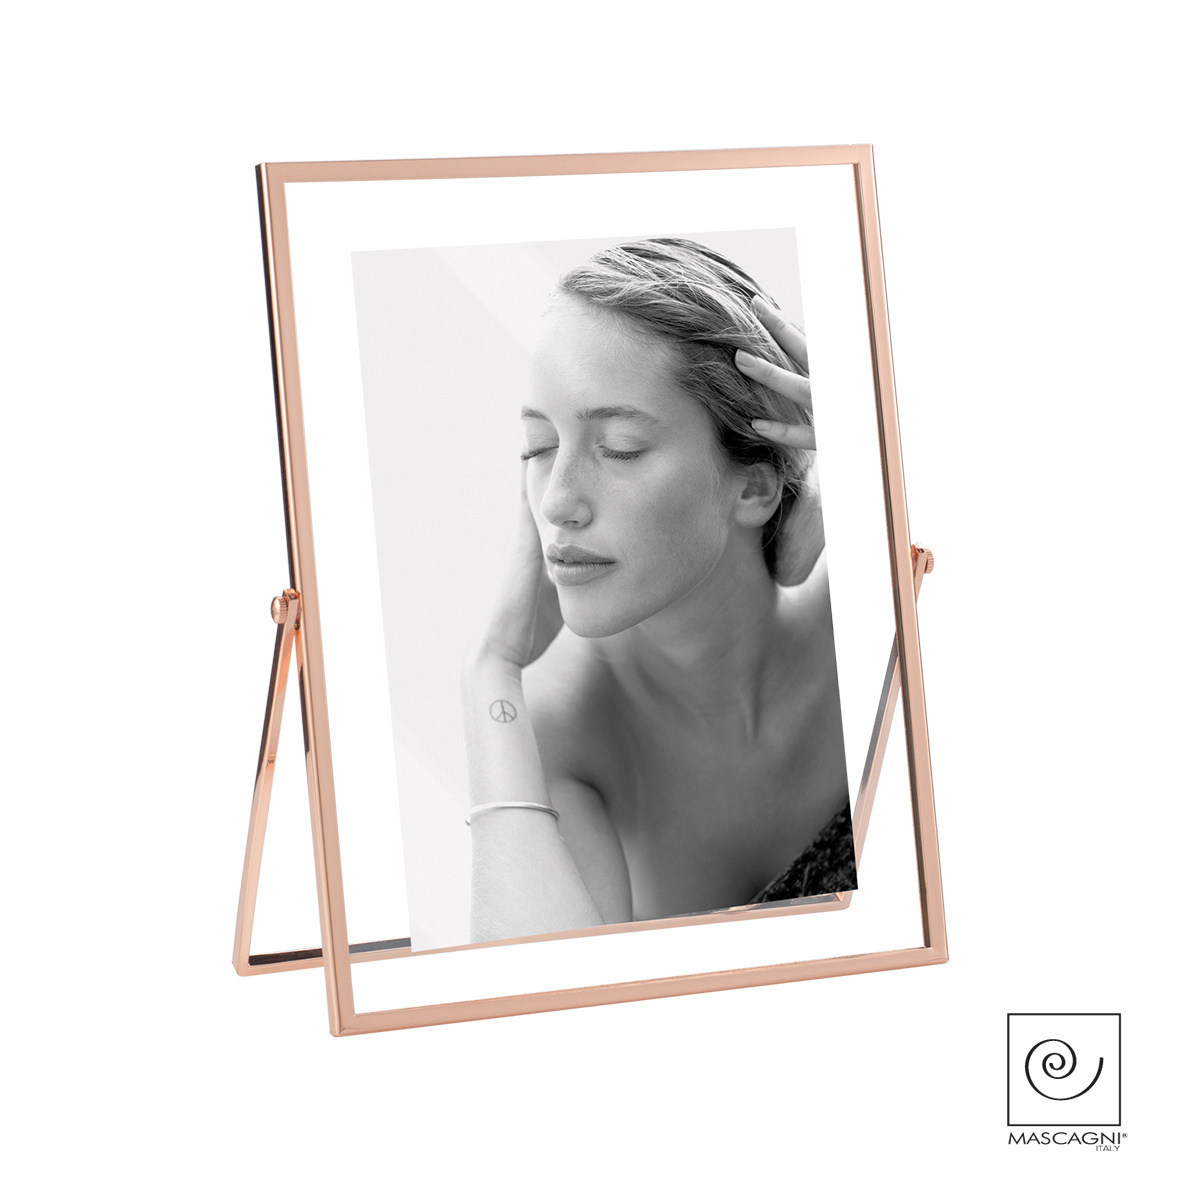 Art Mascagni A692 PHOTO FRAME 13X18 - COL.COPPER